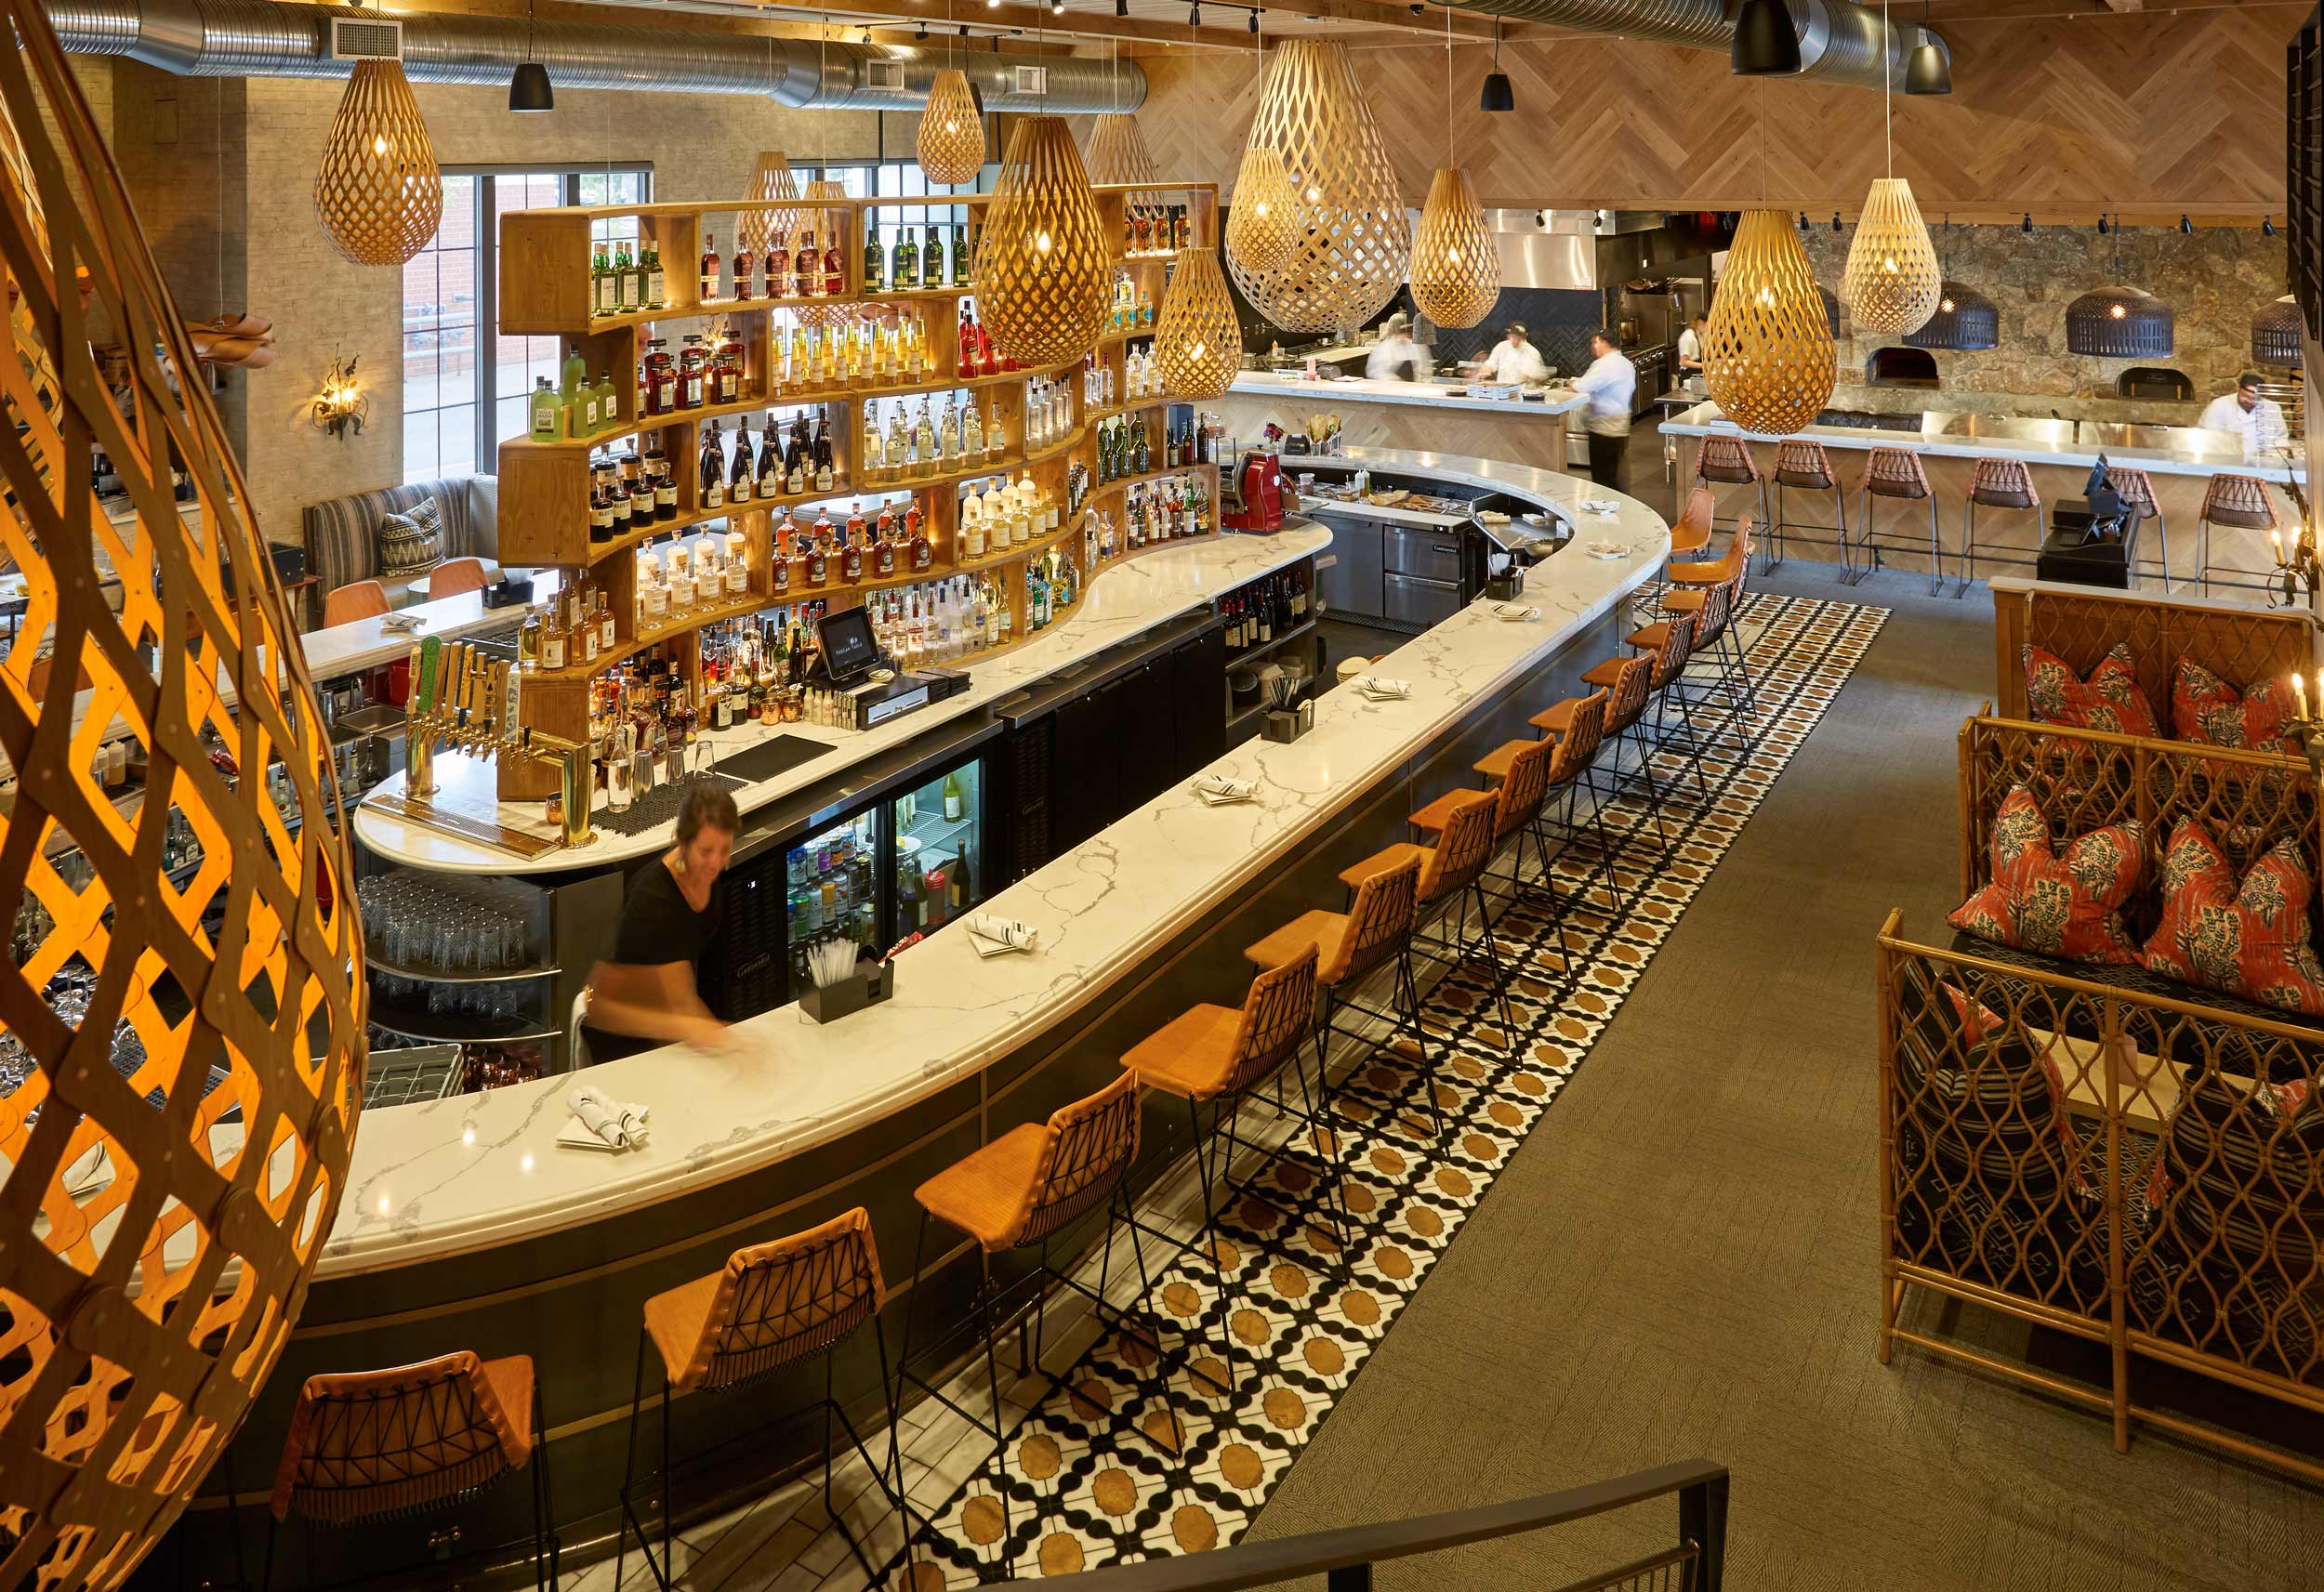 A mezzanine-view overlooks the restaurant's signature pendant lamps and expansive oval bar where the high, curving shelves hold gem-like bottles of locally distilled spirits and classic aperitifs.